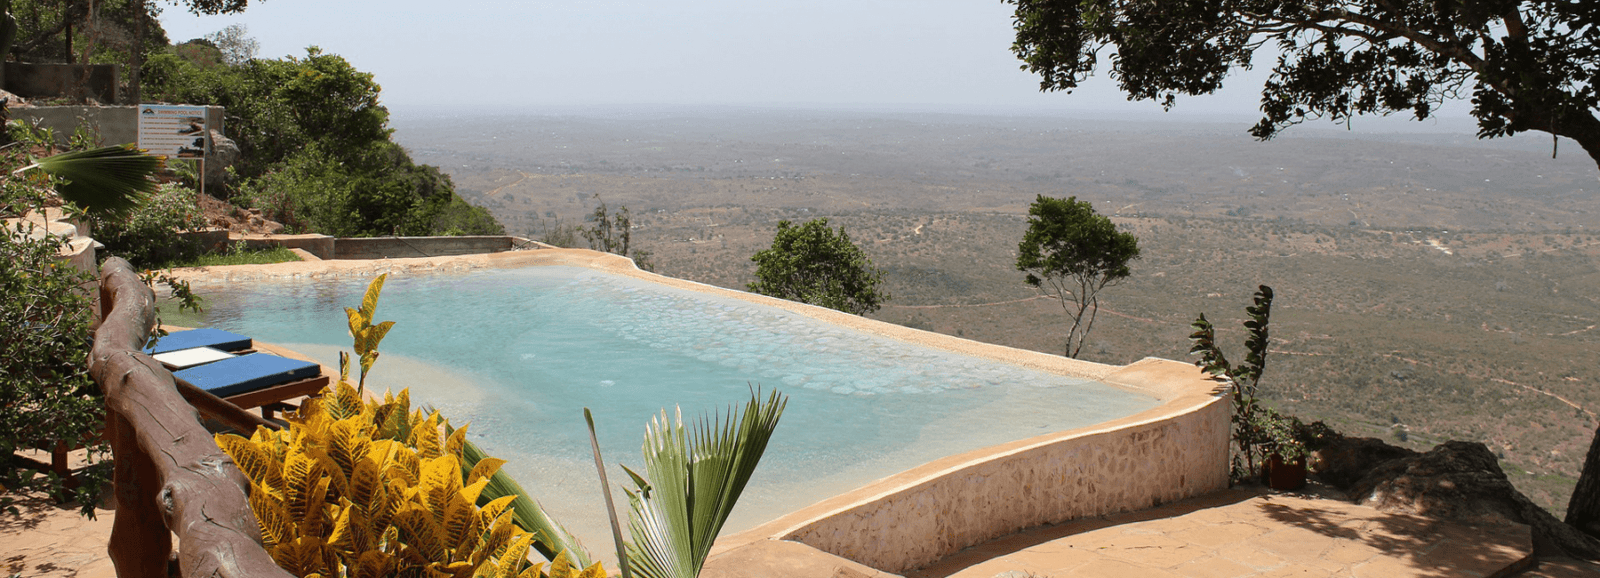 Exploring Kenya's National Parks